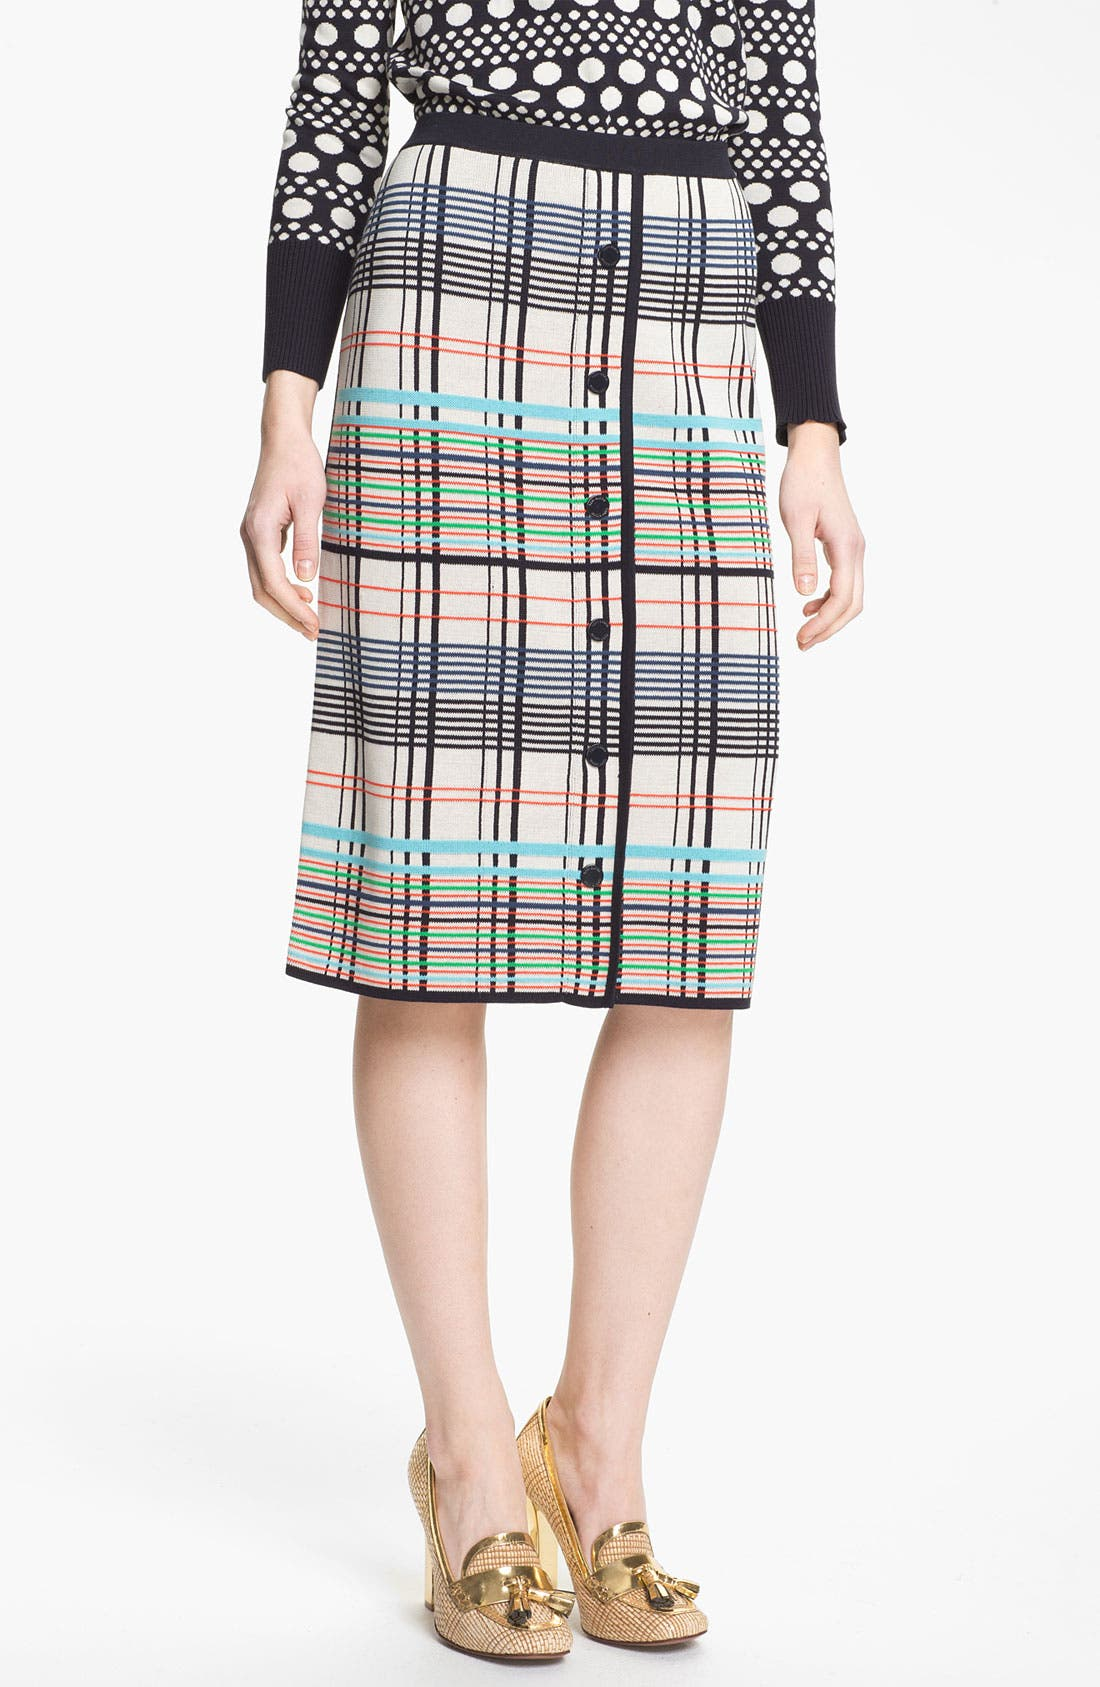 Alternate Image 1 Selected - Tory Burch 'Adalyn' Skirt